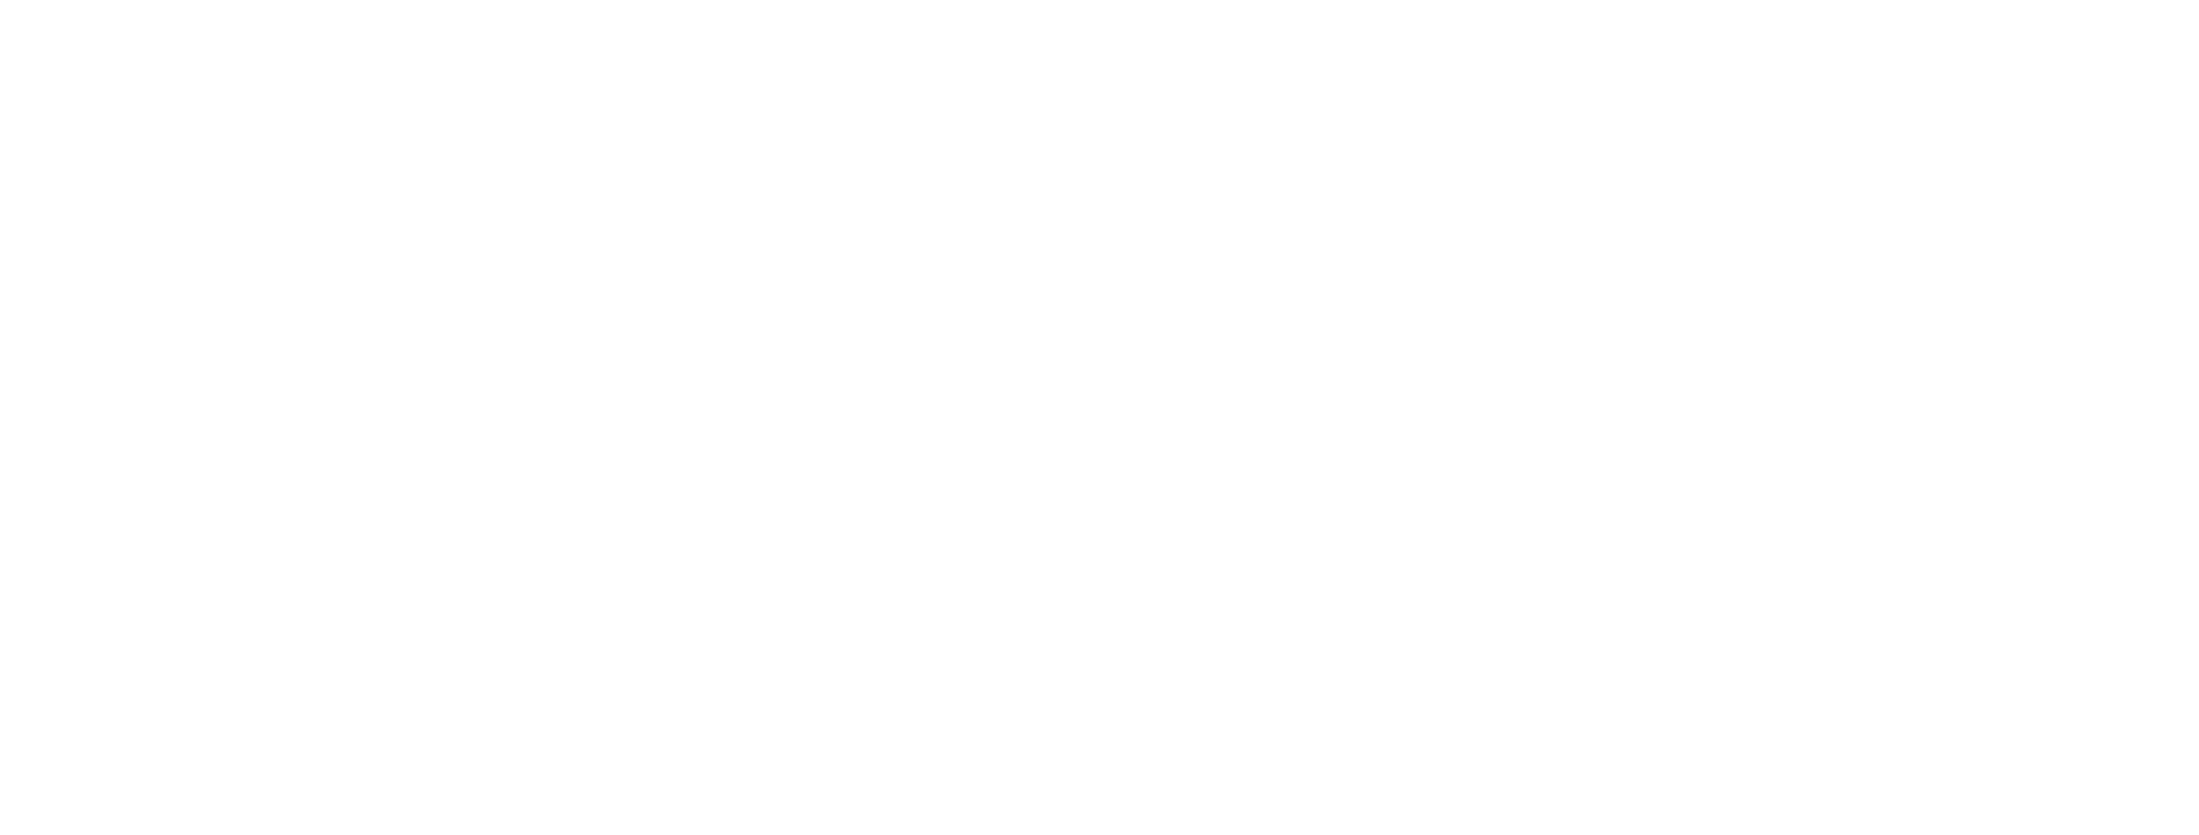 Residential and Commercial Design